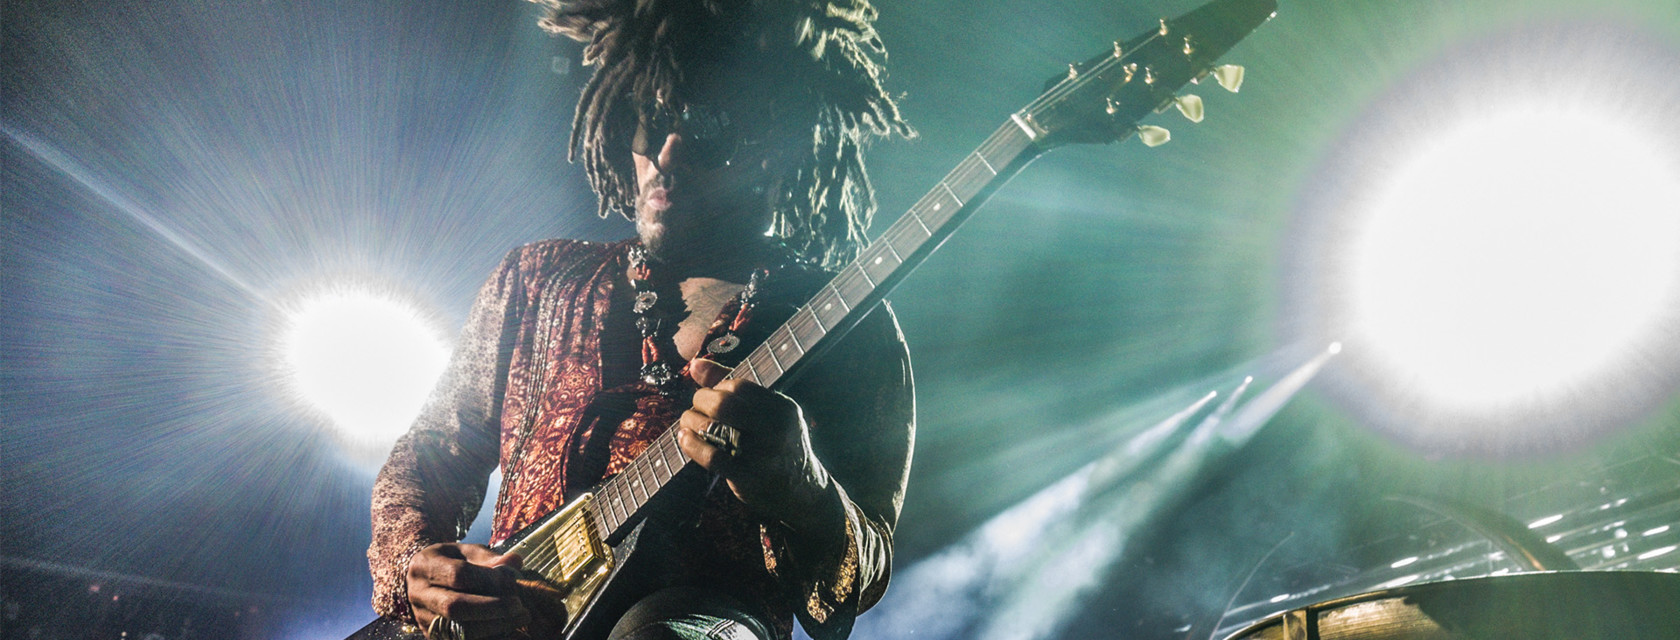 Lenny Kravitz in concert in Trois-Rivieres